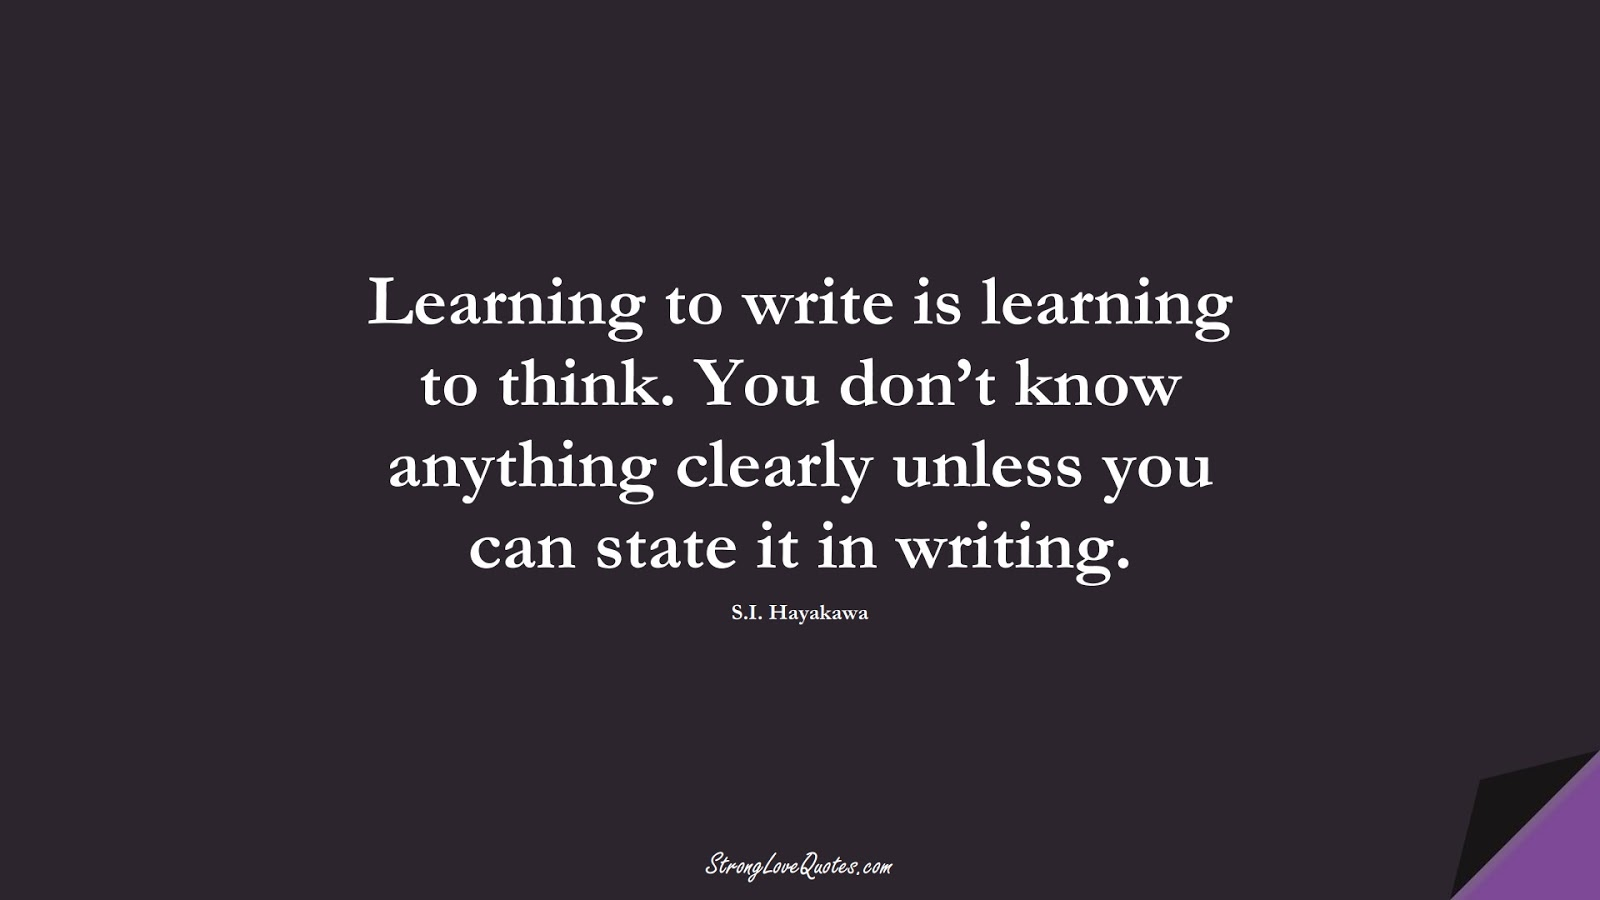 Learning to write is learning to think. You don't know anything clearly unless you can state it in writing. (S.I. Hayakawa);  #LearningQuotes